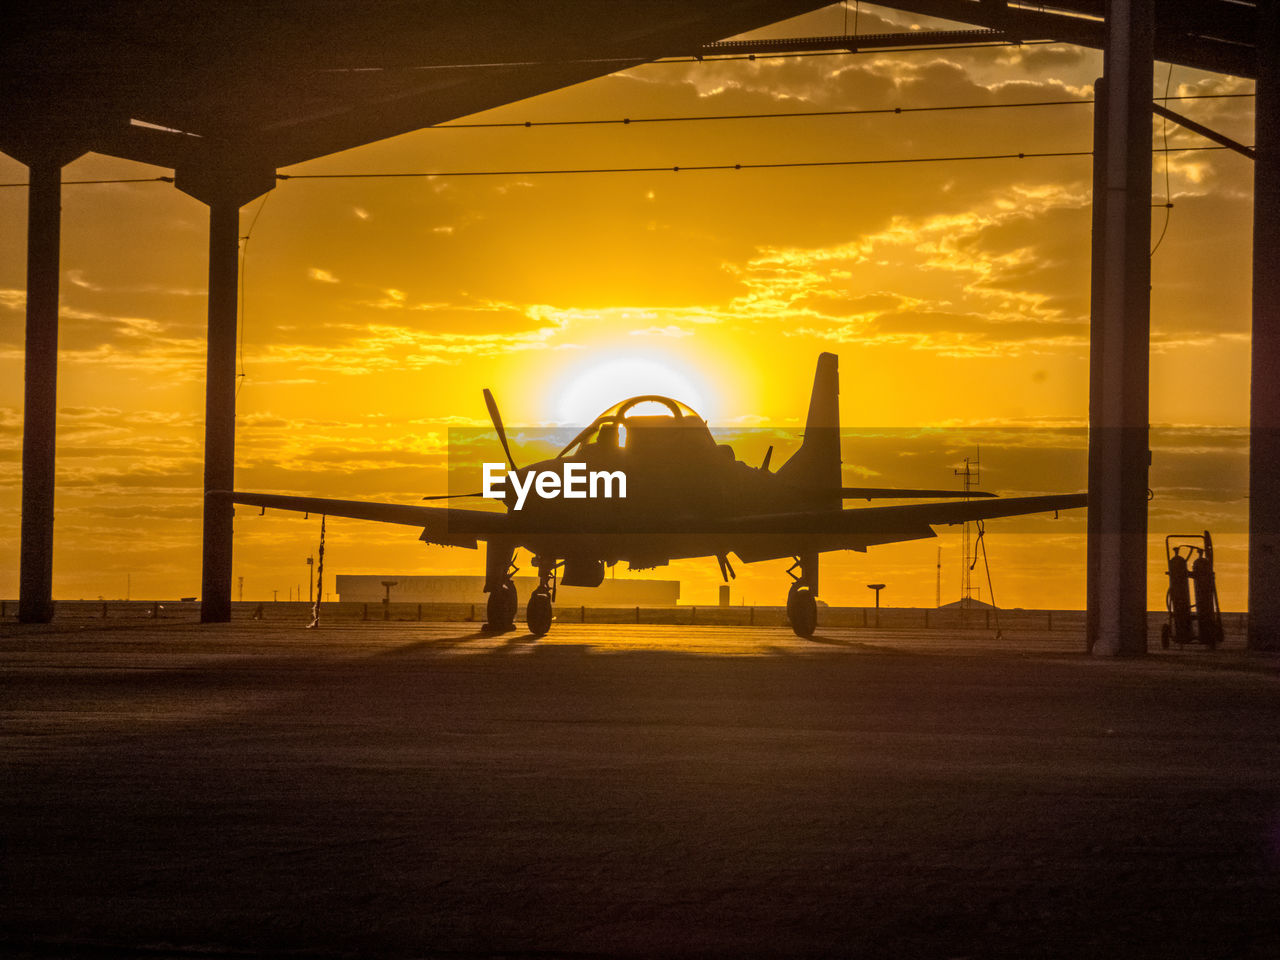 sky, sunset, transportation, cloud - sky, mode of transportation, air vehicle, orange color, nature, airplane, airport, sunlight, airport runway, sun, outdoors, no people, silhouette, journey, travel, aerospace industry, runway